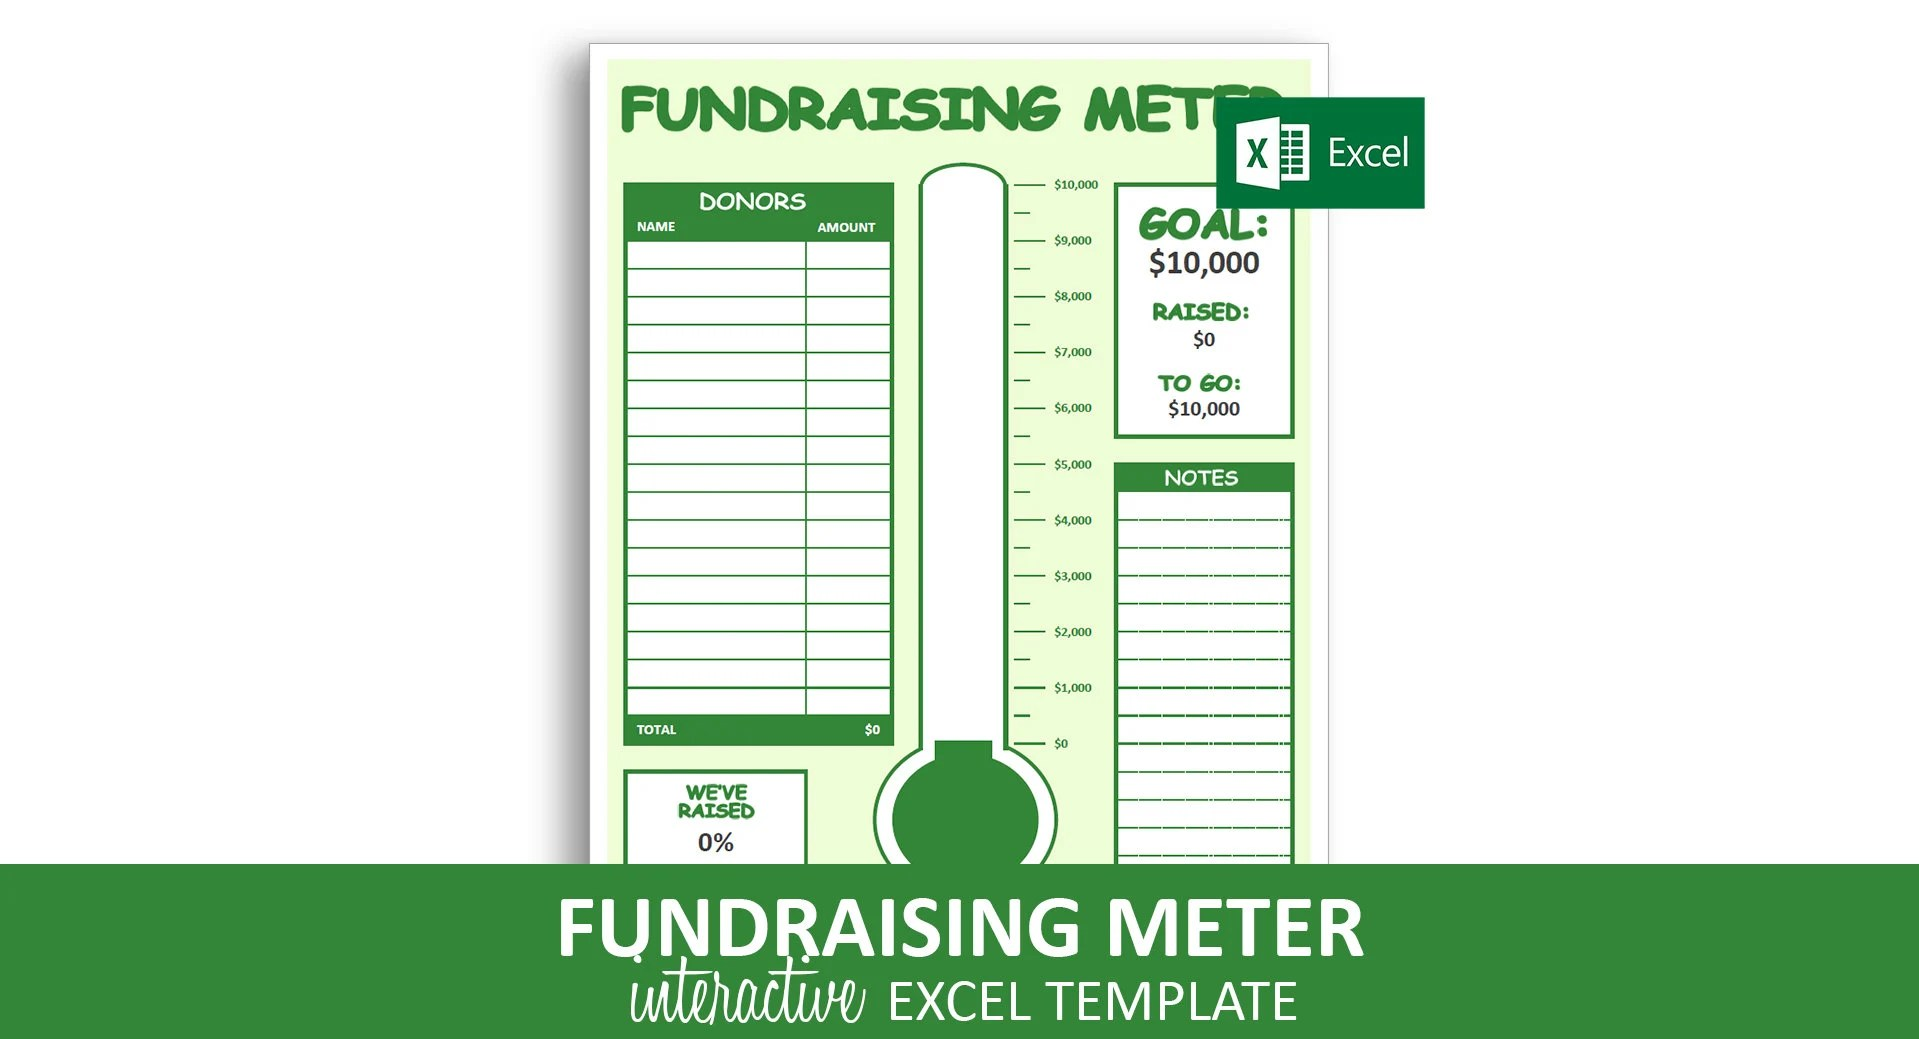 Fundraising Meter Excel Template Donor Tracking List Etsy